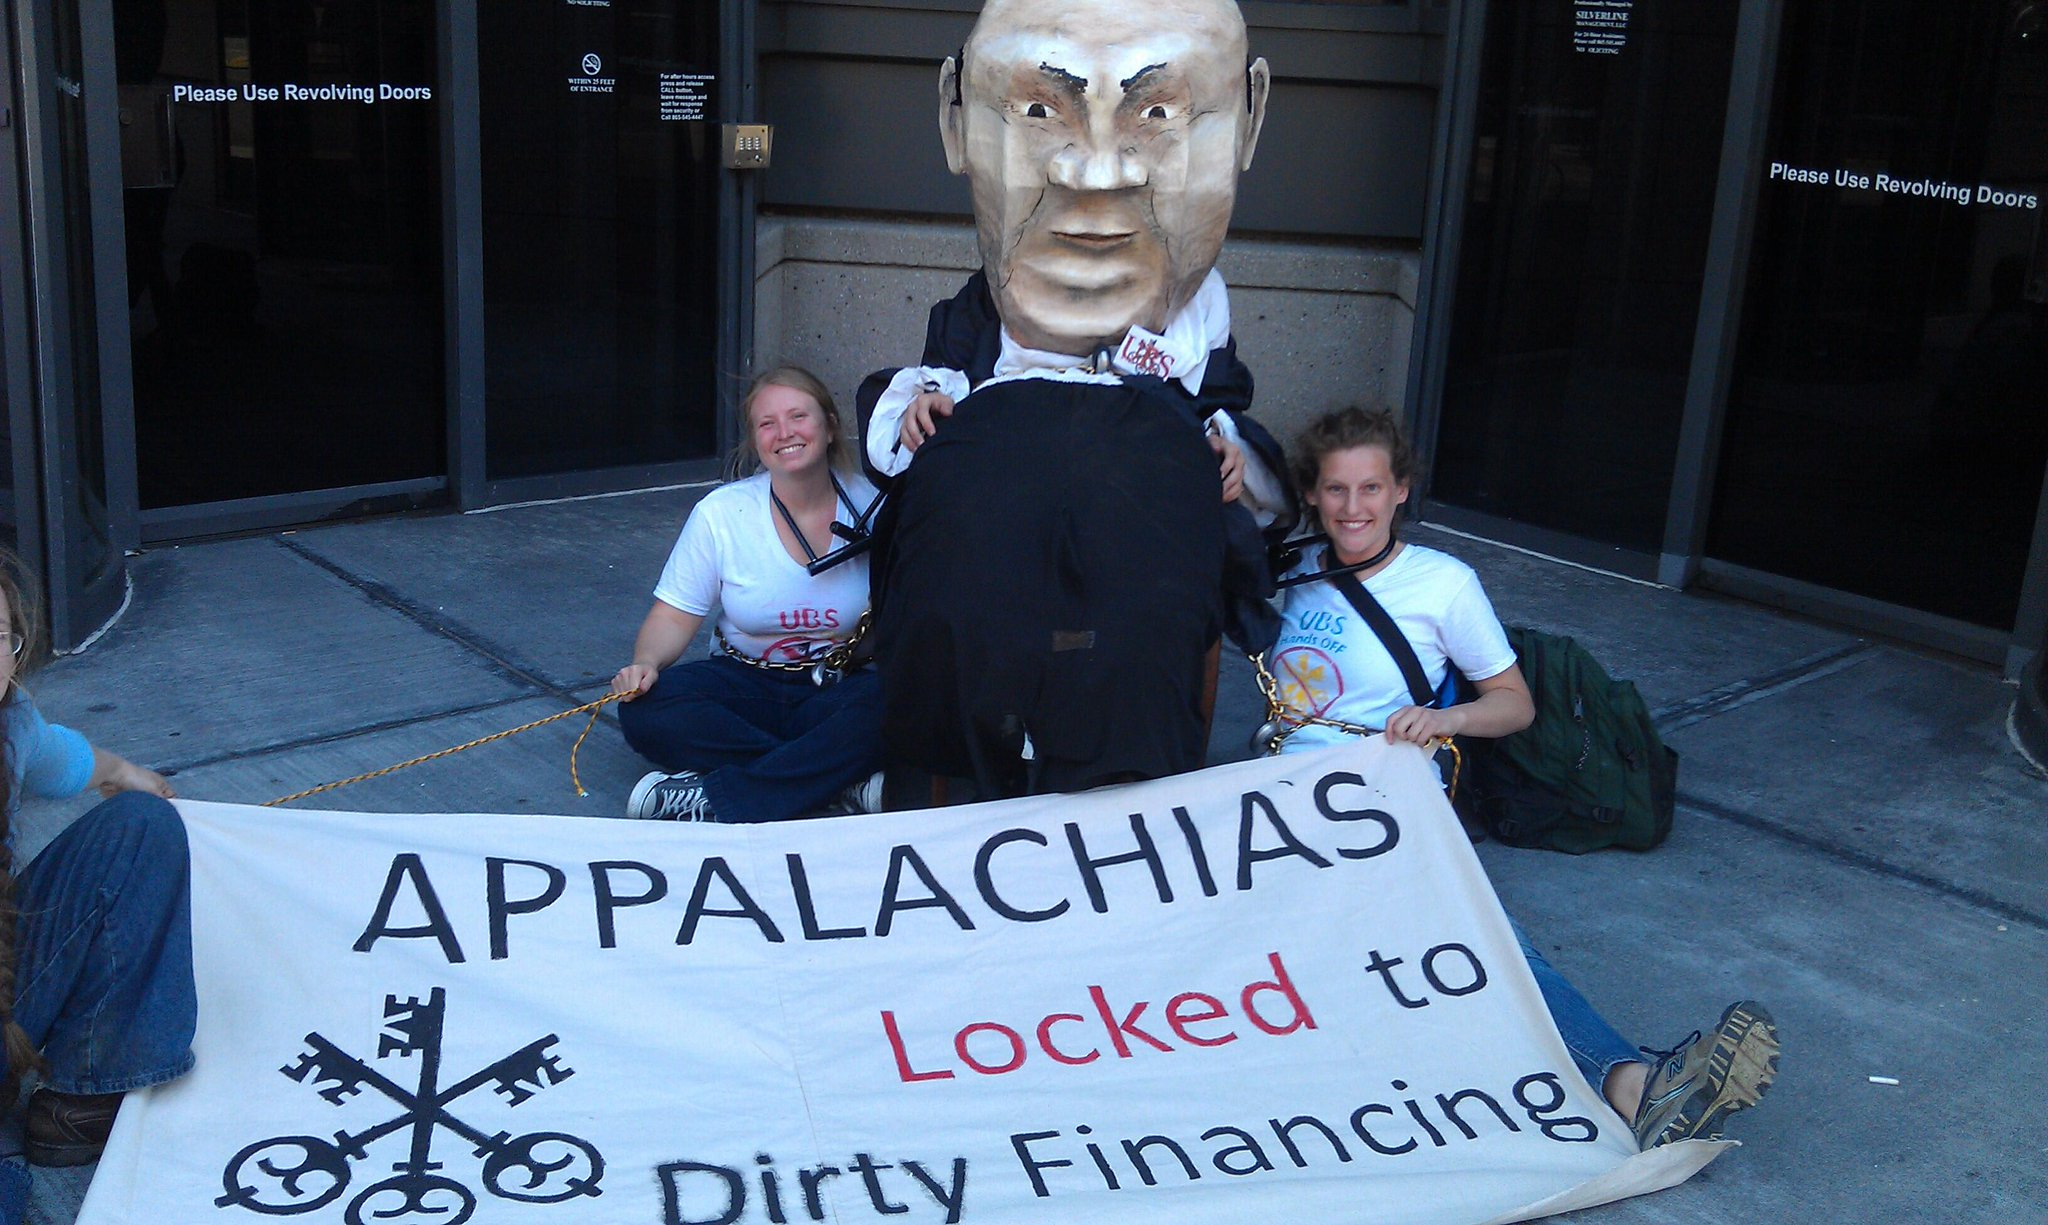 Two women locked to fat cat banker puppet at UBS Knoxville office.